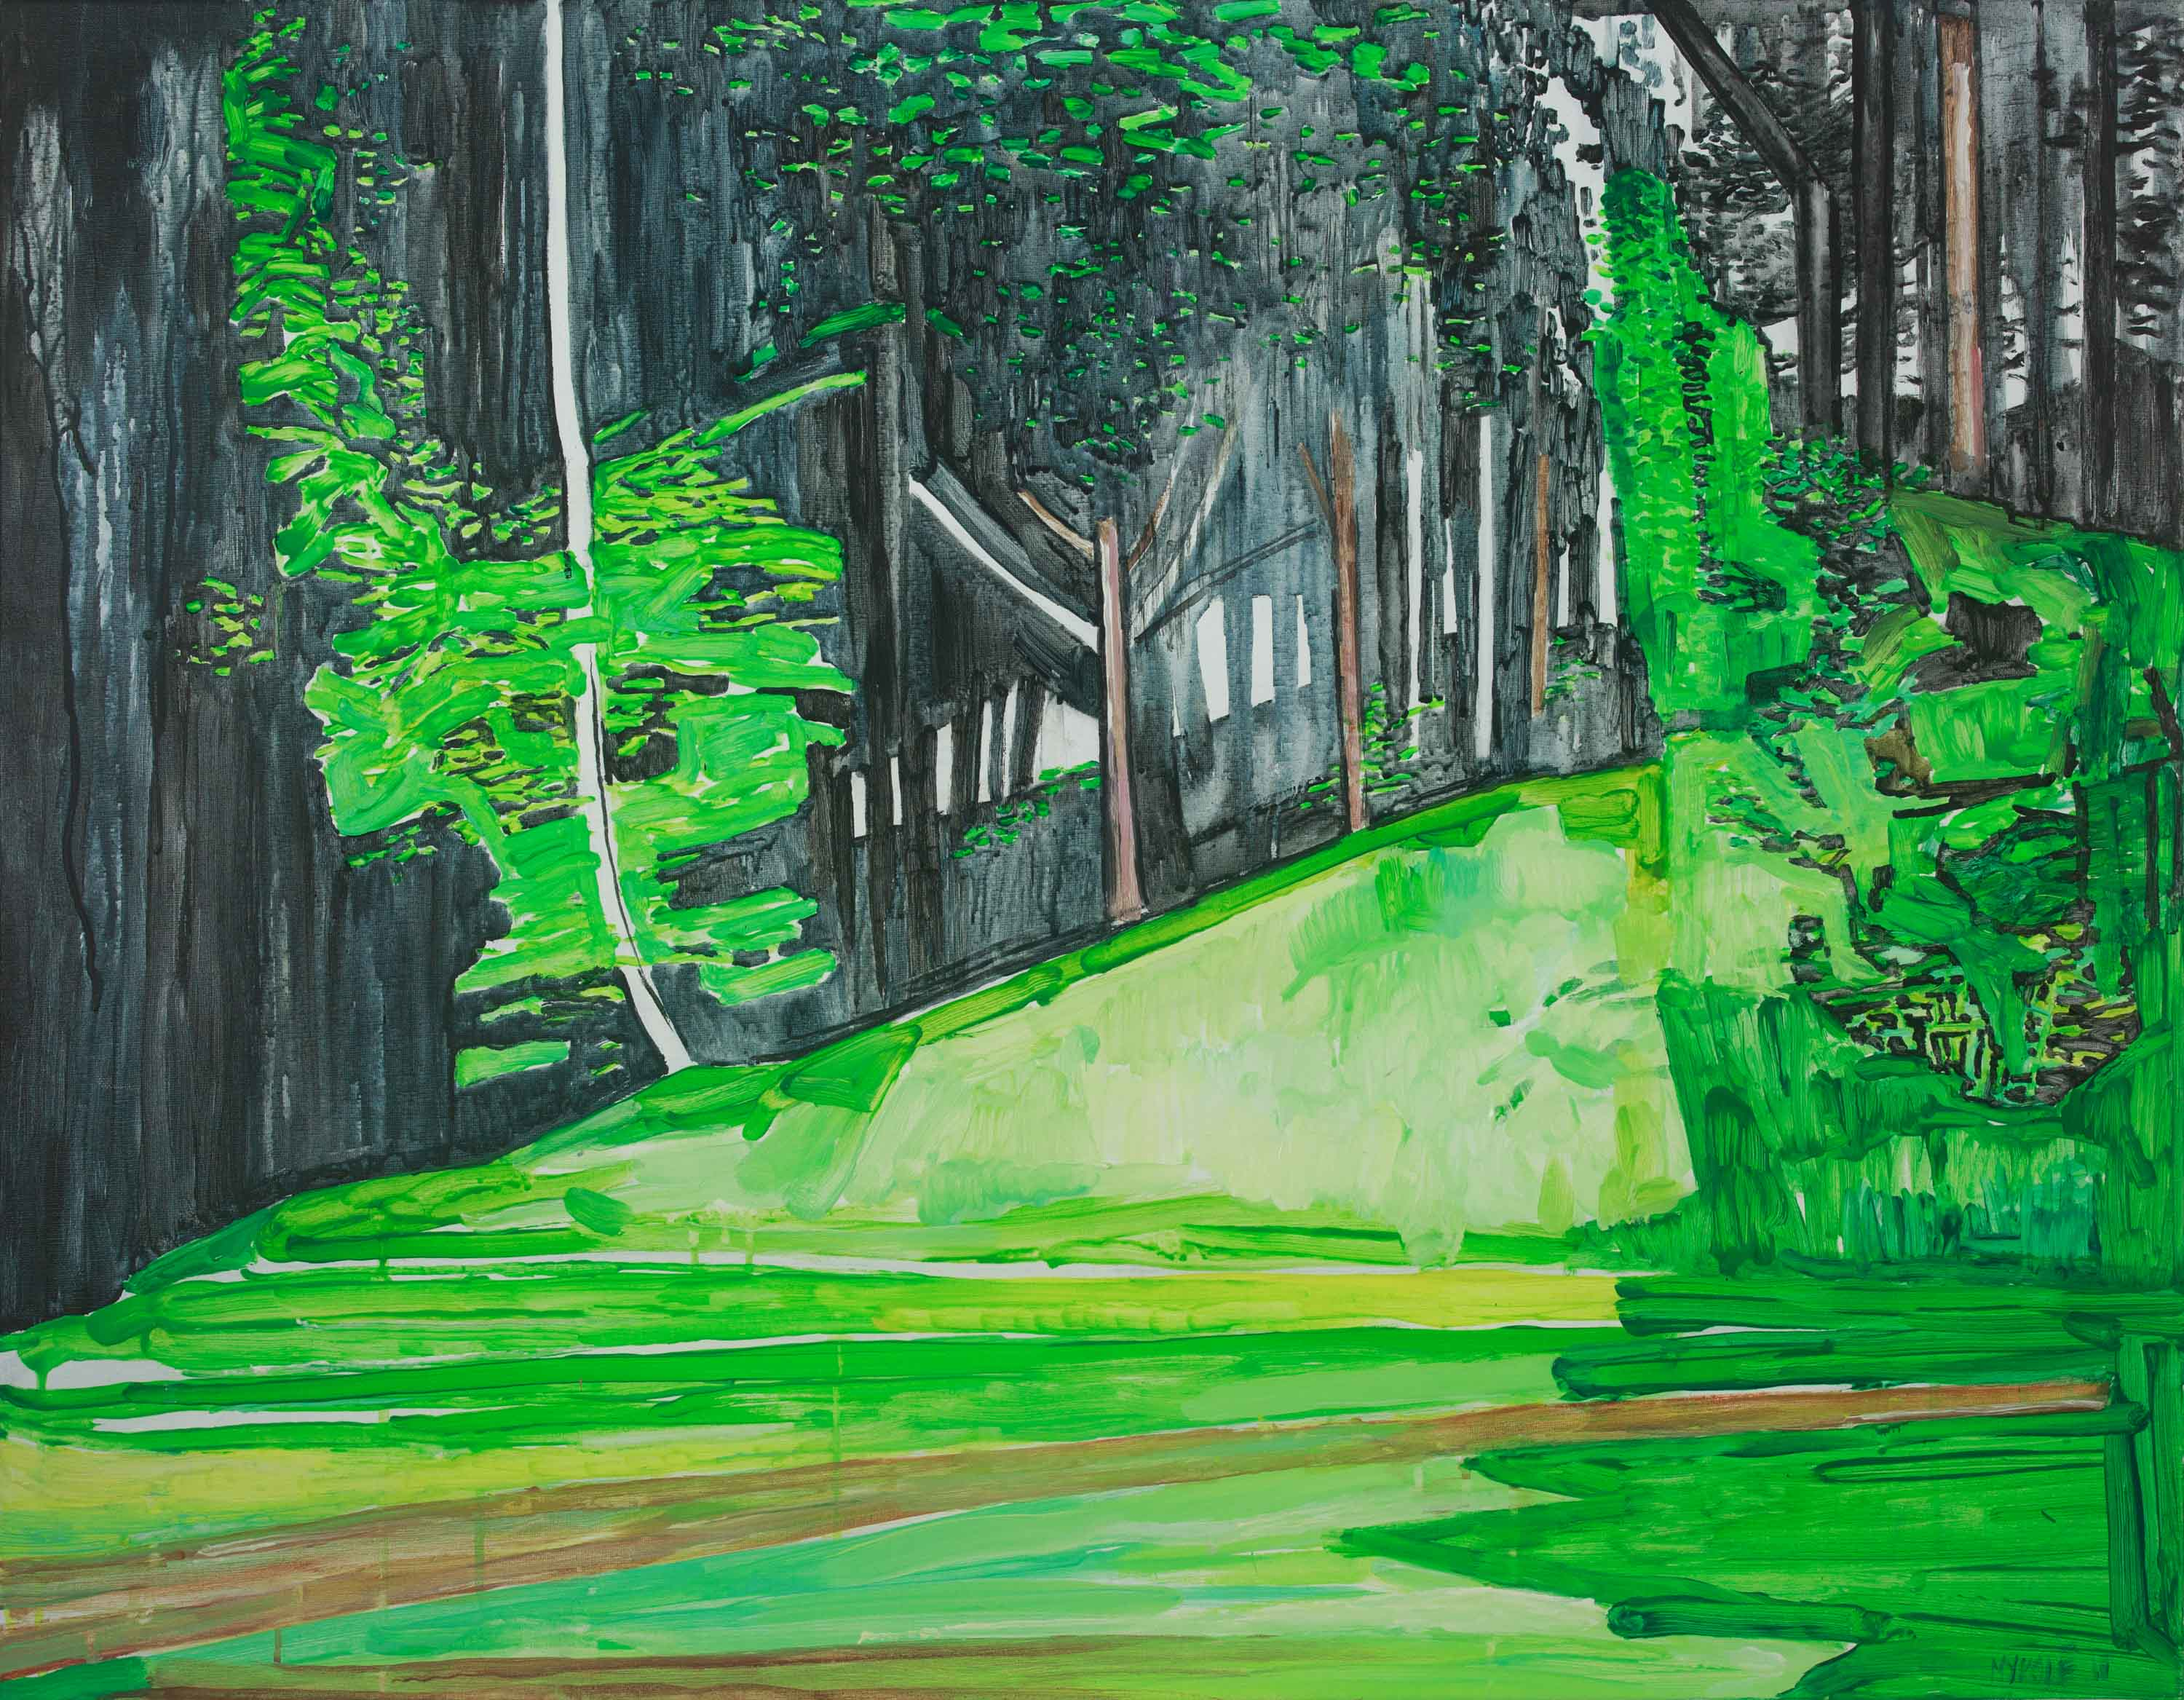 Green hill 1. Acrylic, canvas. 70x90cm. 2018